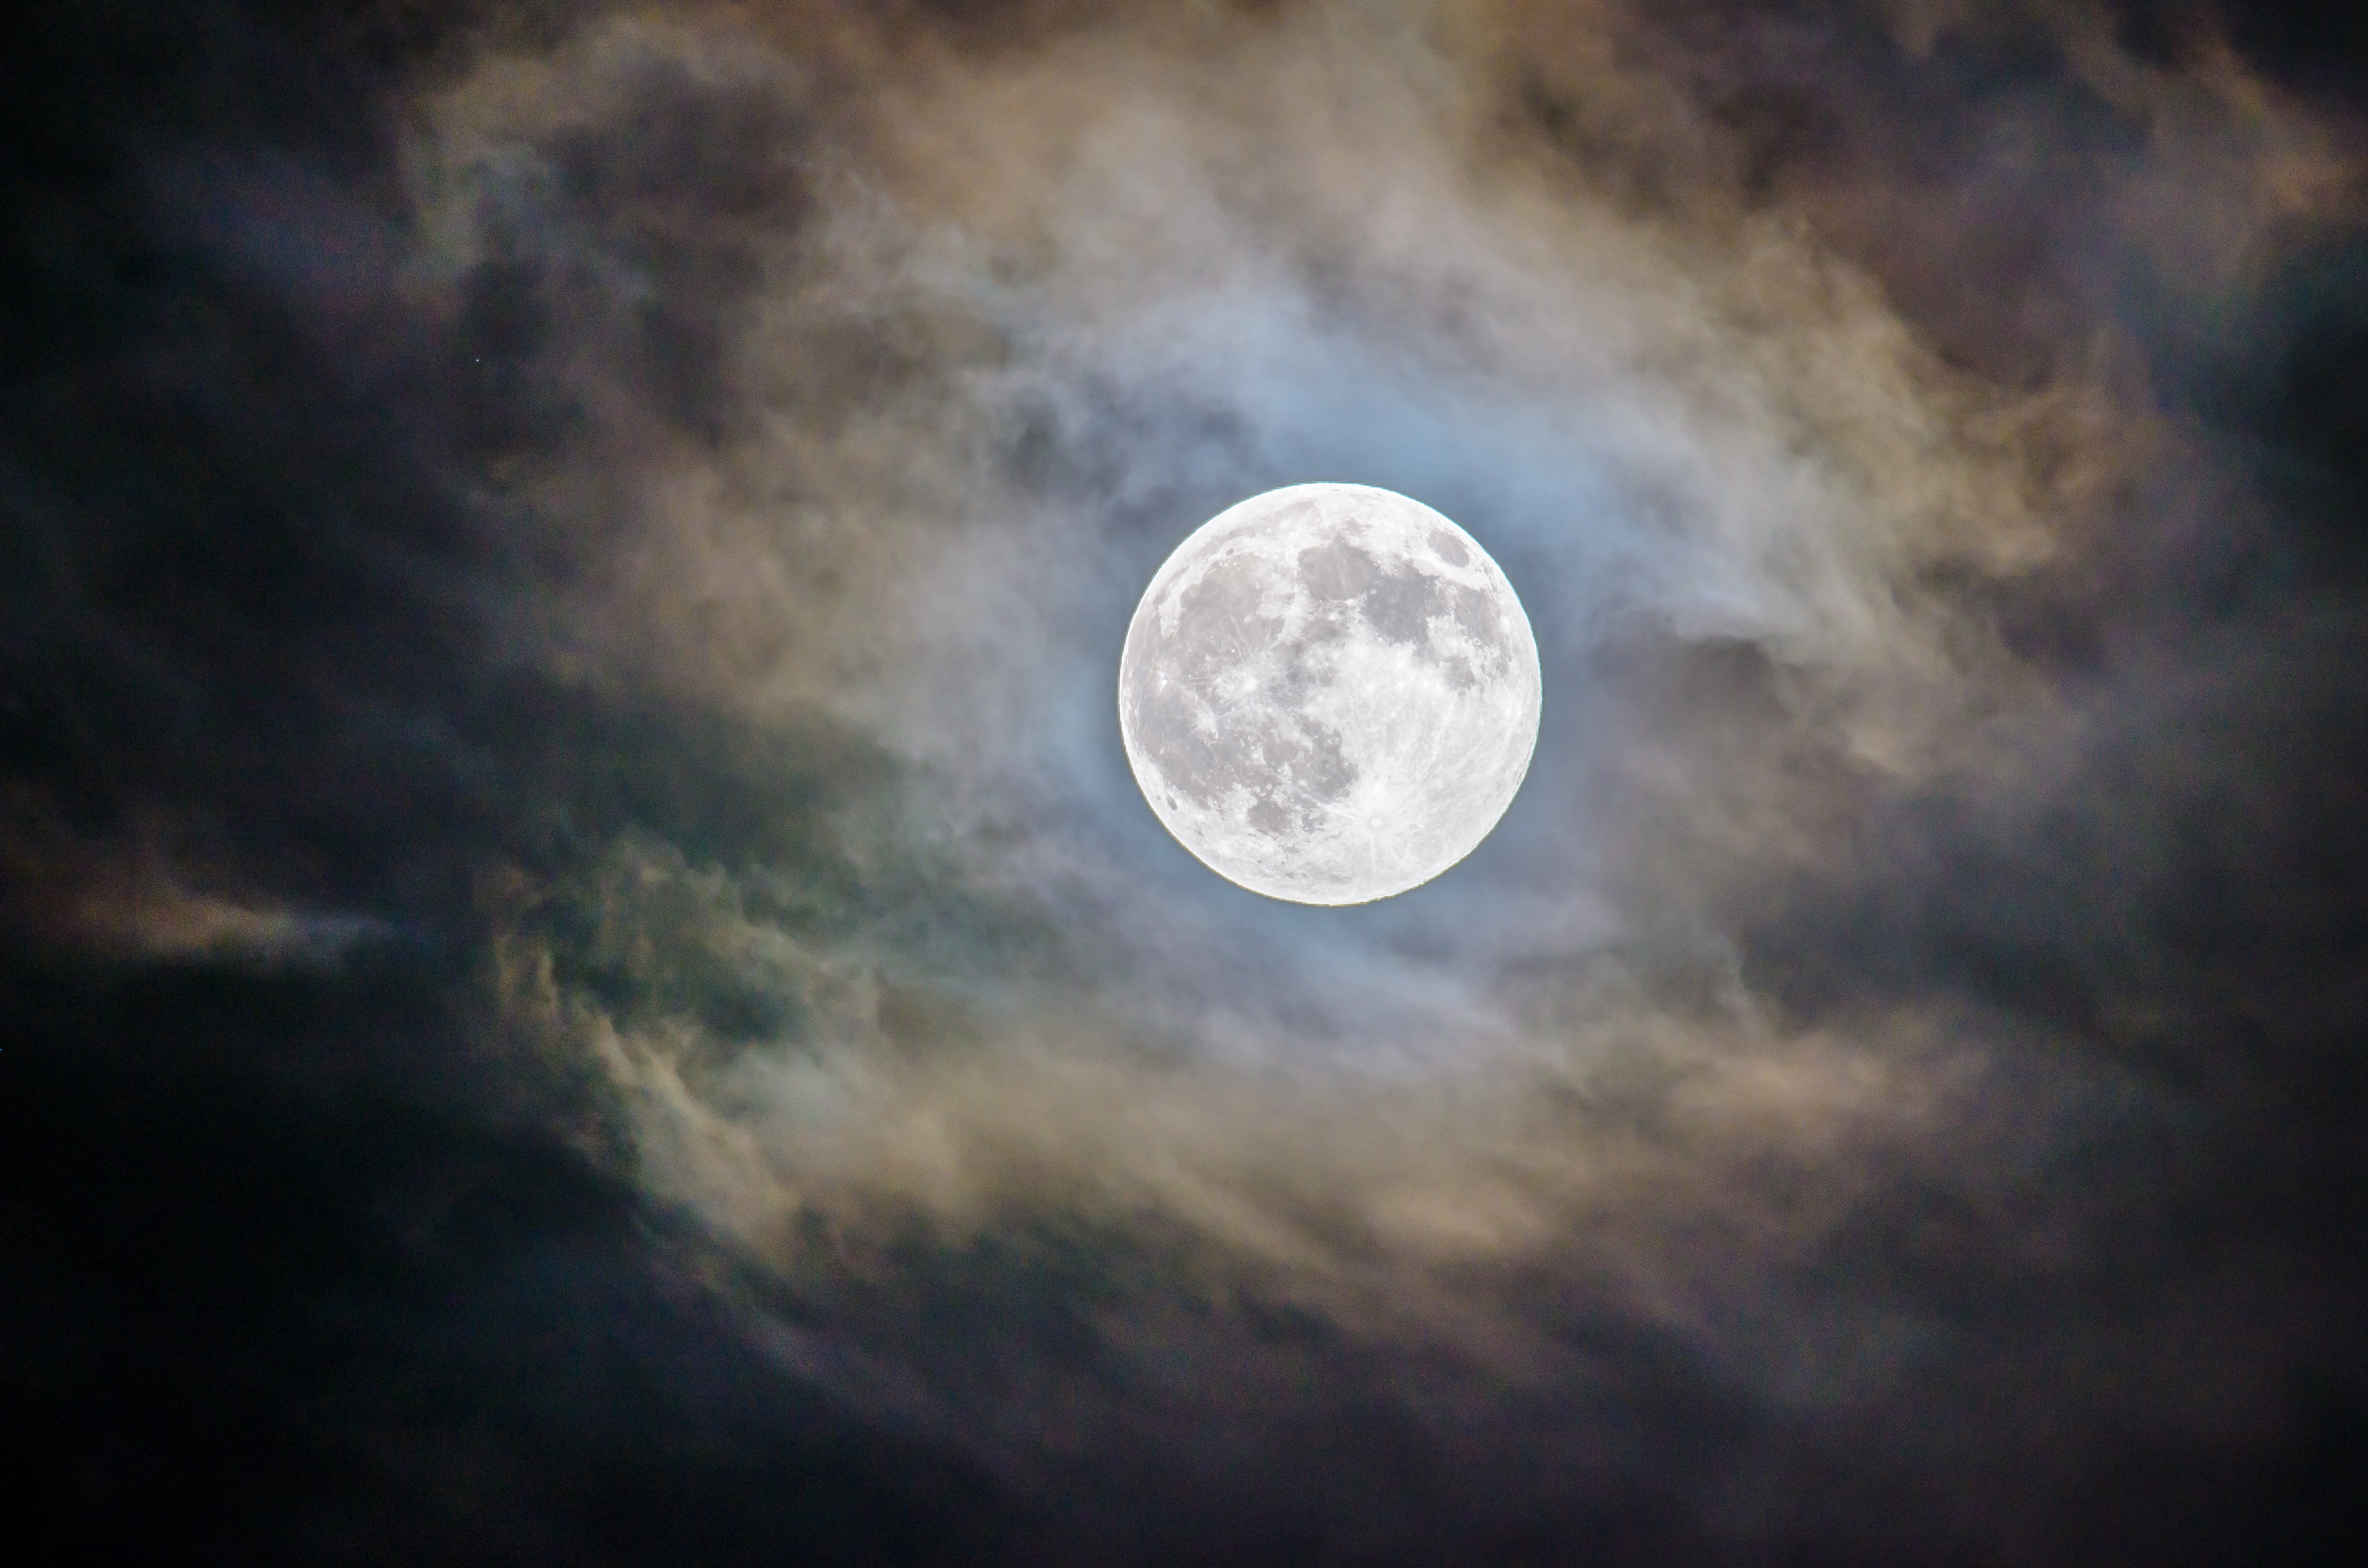 Can't sleep? Intuitive senses on overdrive? Blame it on the Moon!